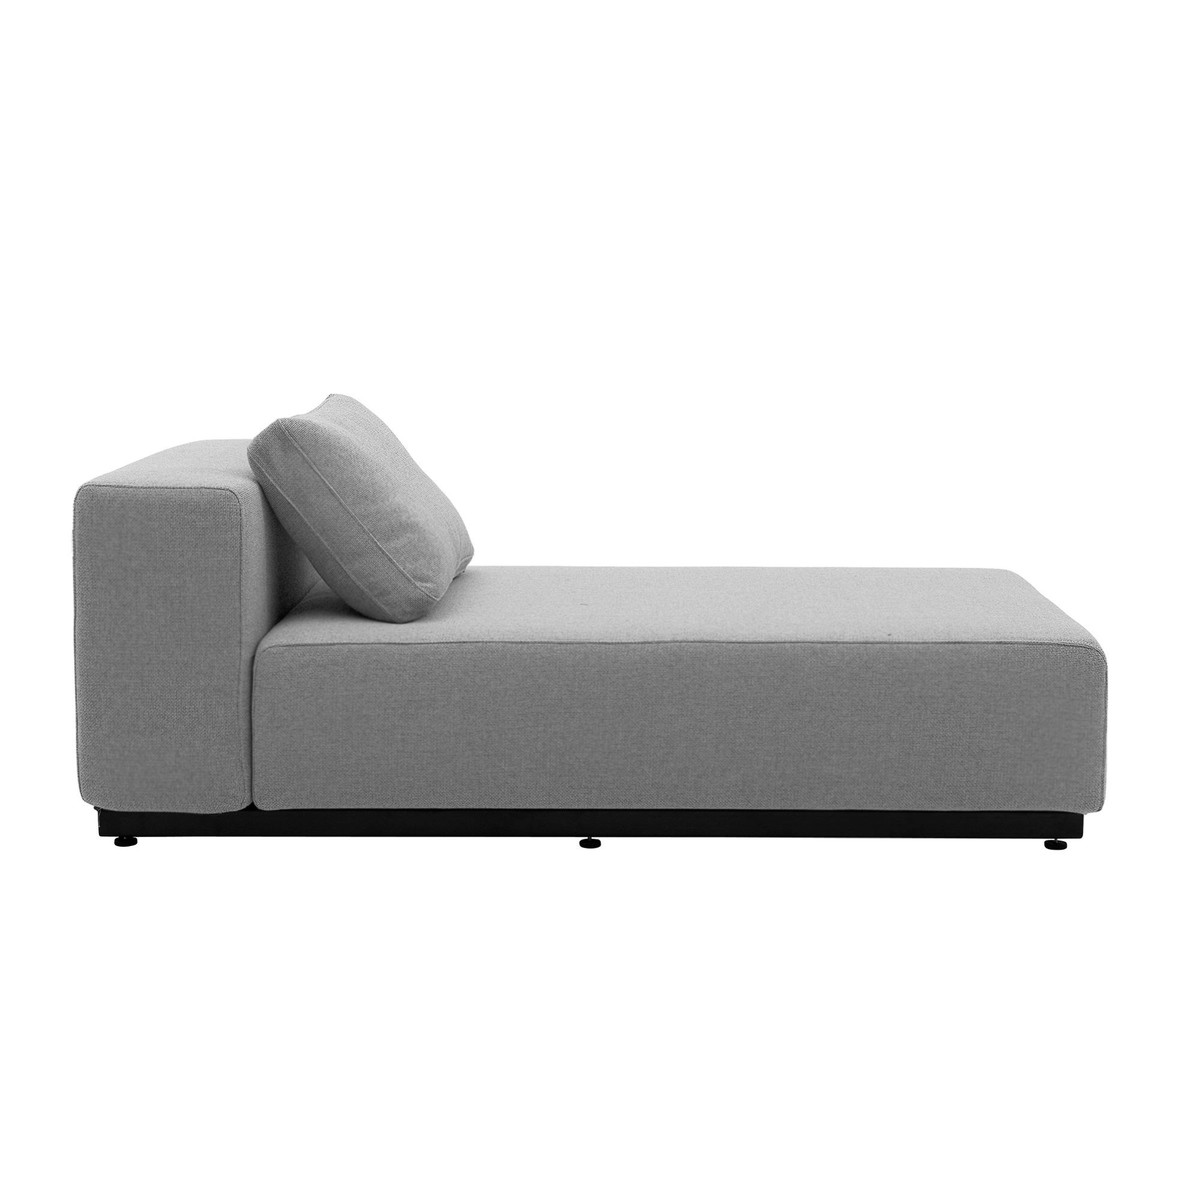 Nevada chaise longue softline for Chaise longue online